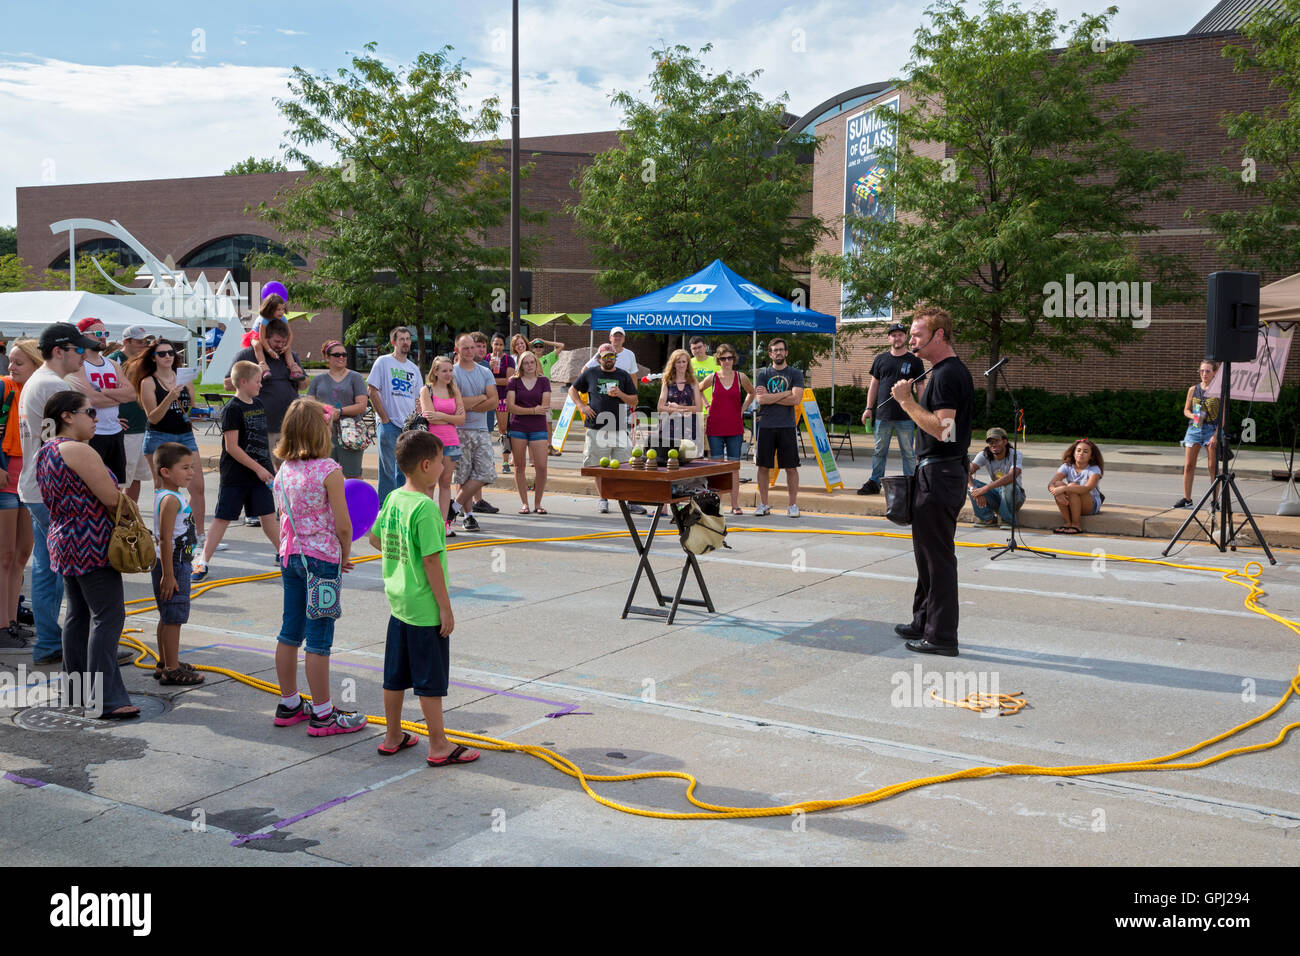 Fort Wayne, Indiana - The 'Busker Pitch' at the Fort Wayne Taste of the Arts Festival. - Stock Image